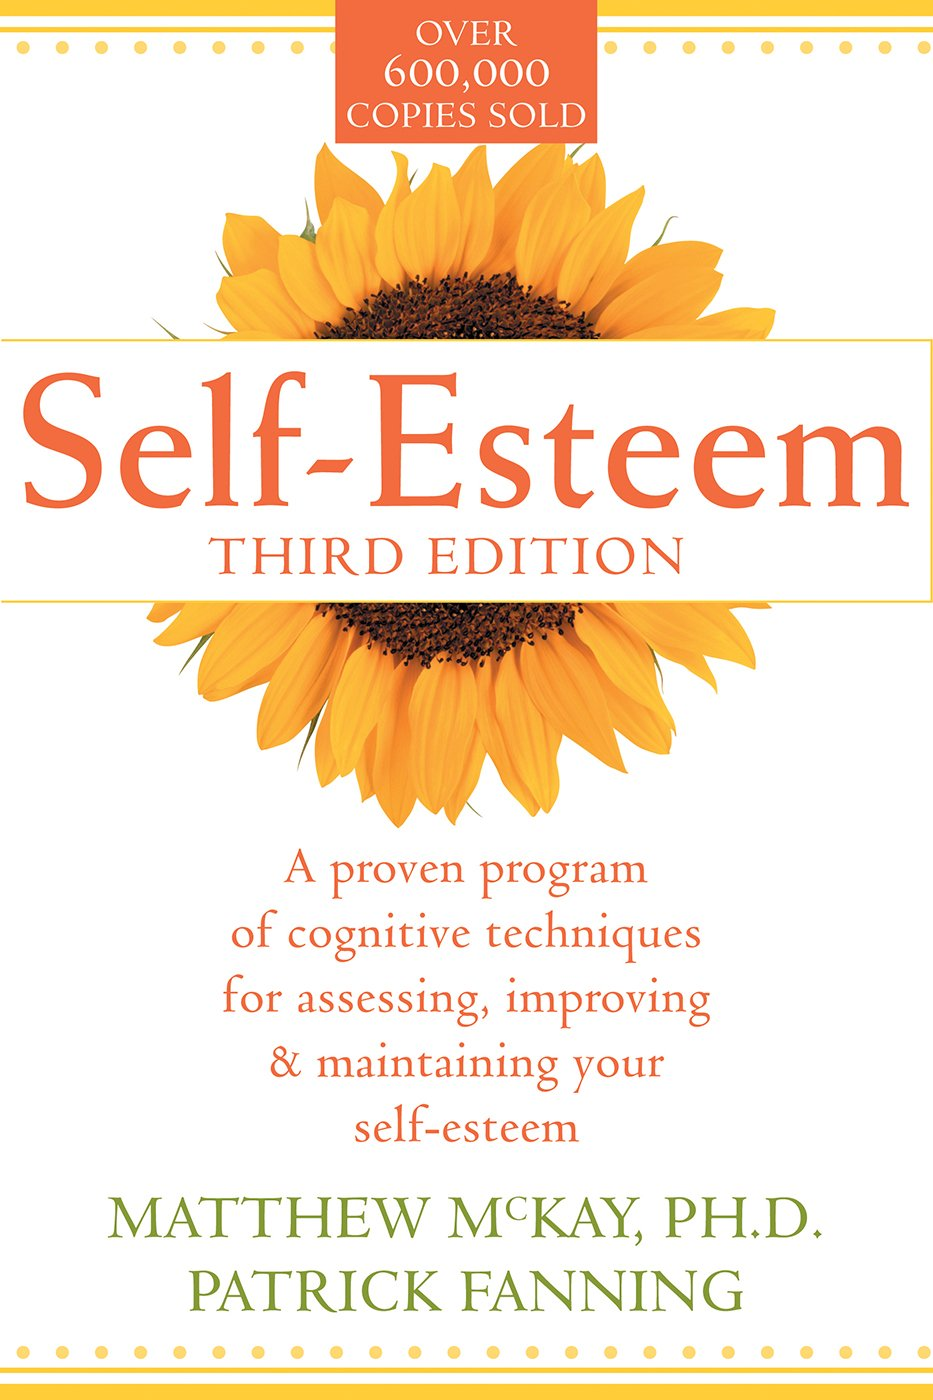 worksheet Self Esteem Building Worksheets 11 books that will help you build better self esteem because everyone could use a boost sometimes